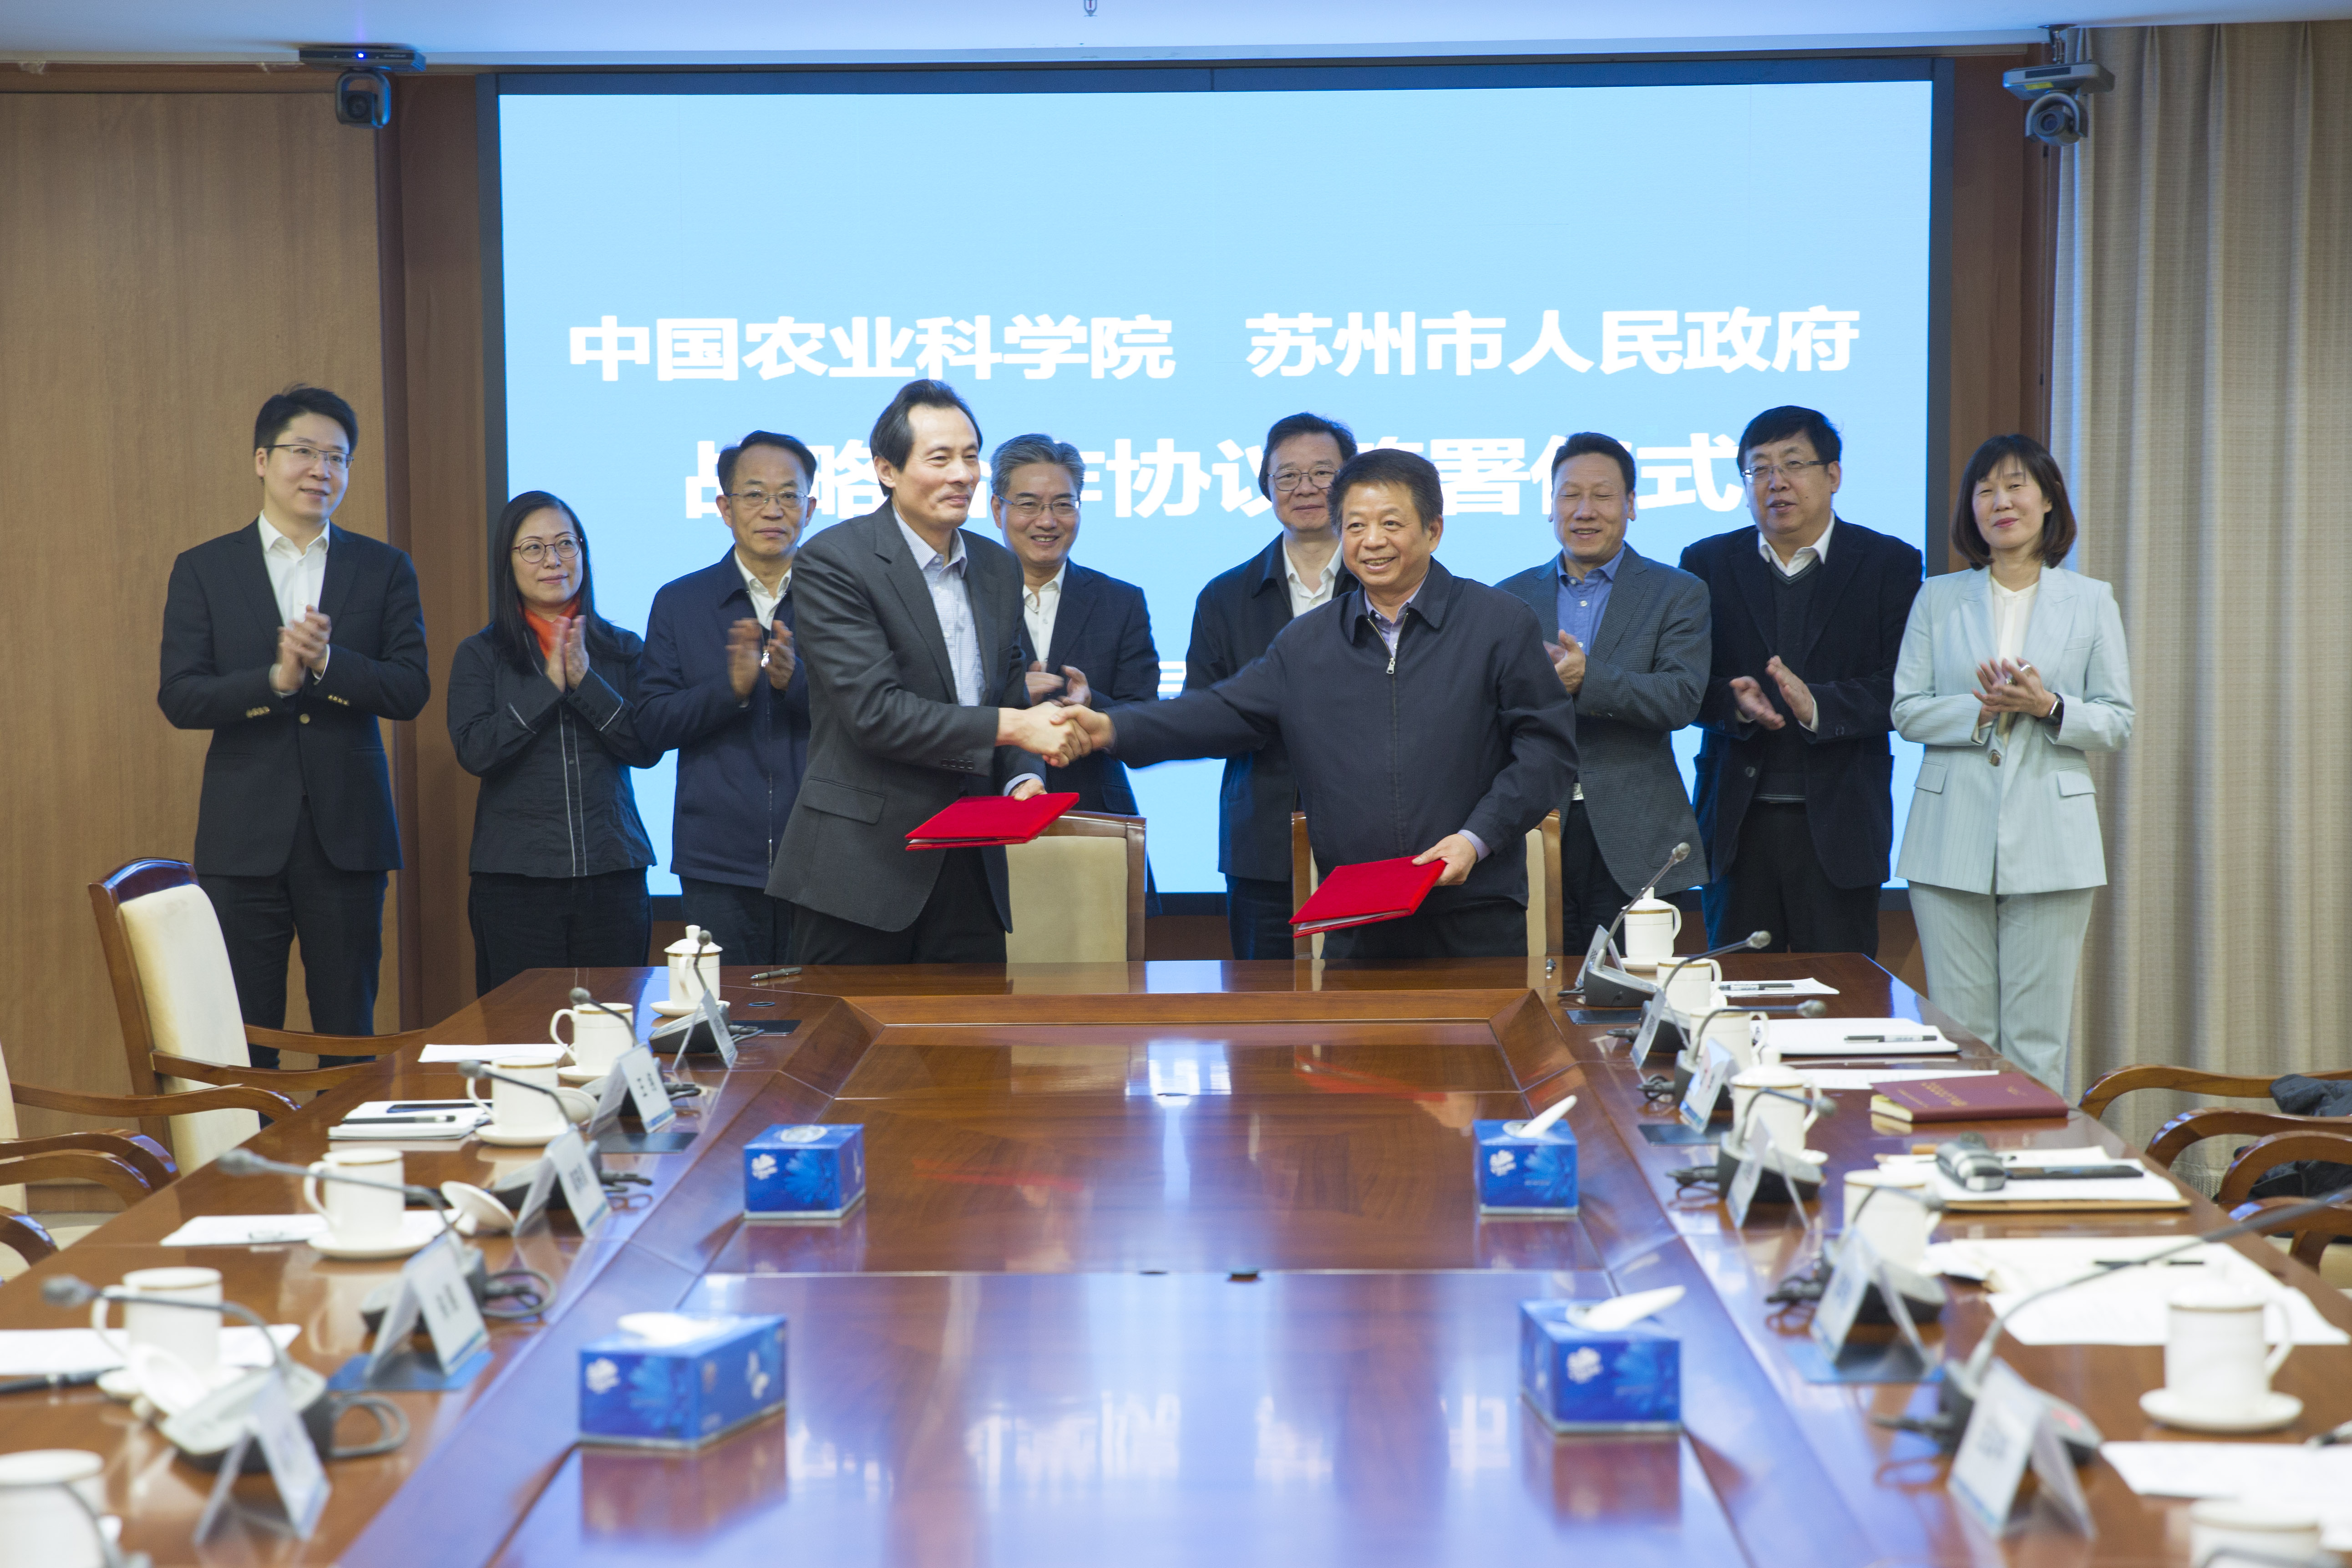 [Chinese] Chinese Academy of Agricultural Sciences signs strategic cooperation with Suzhou | Central VTech boosts the institute's cooperation ...